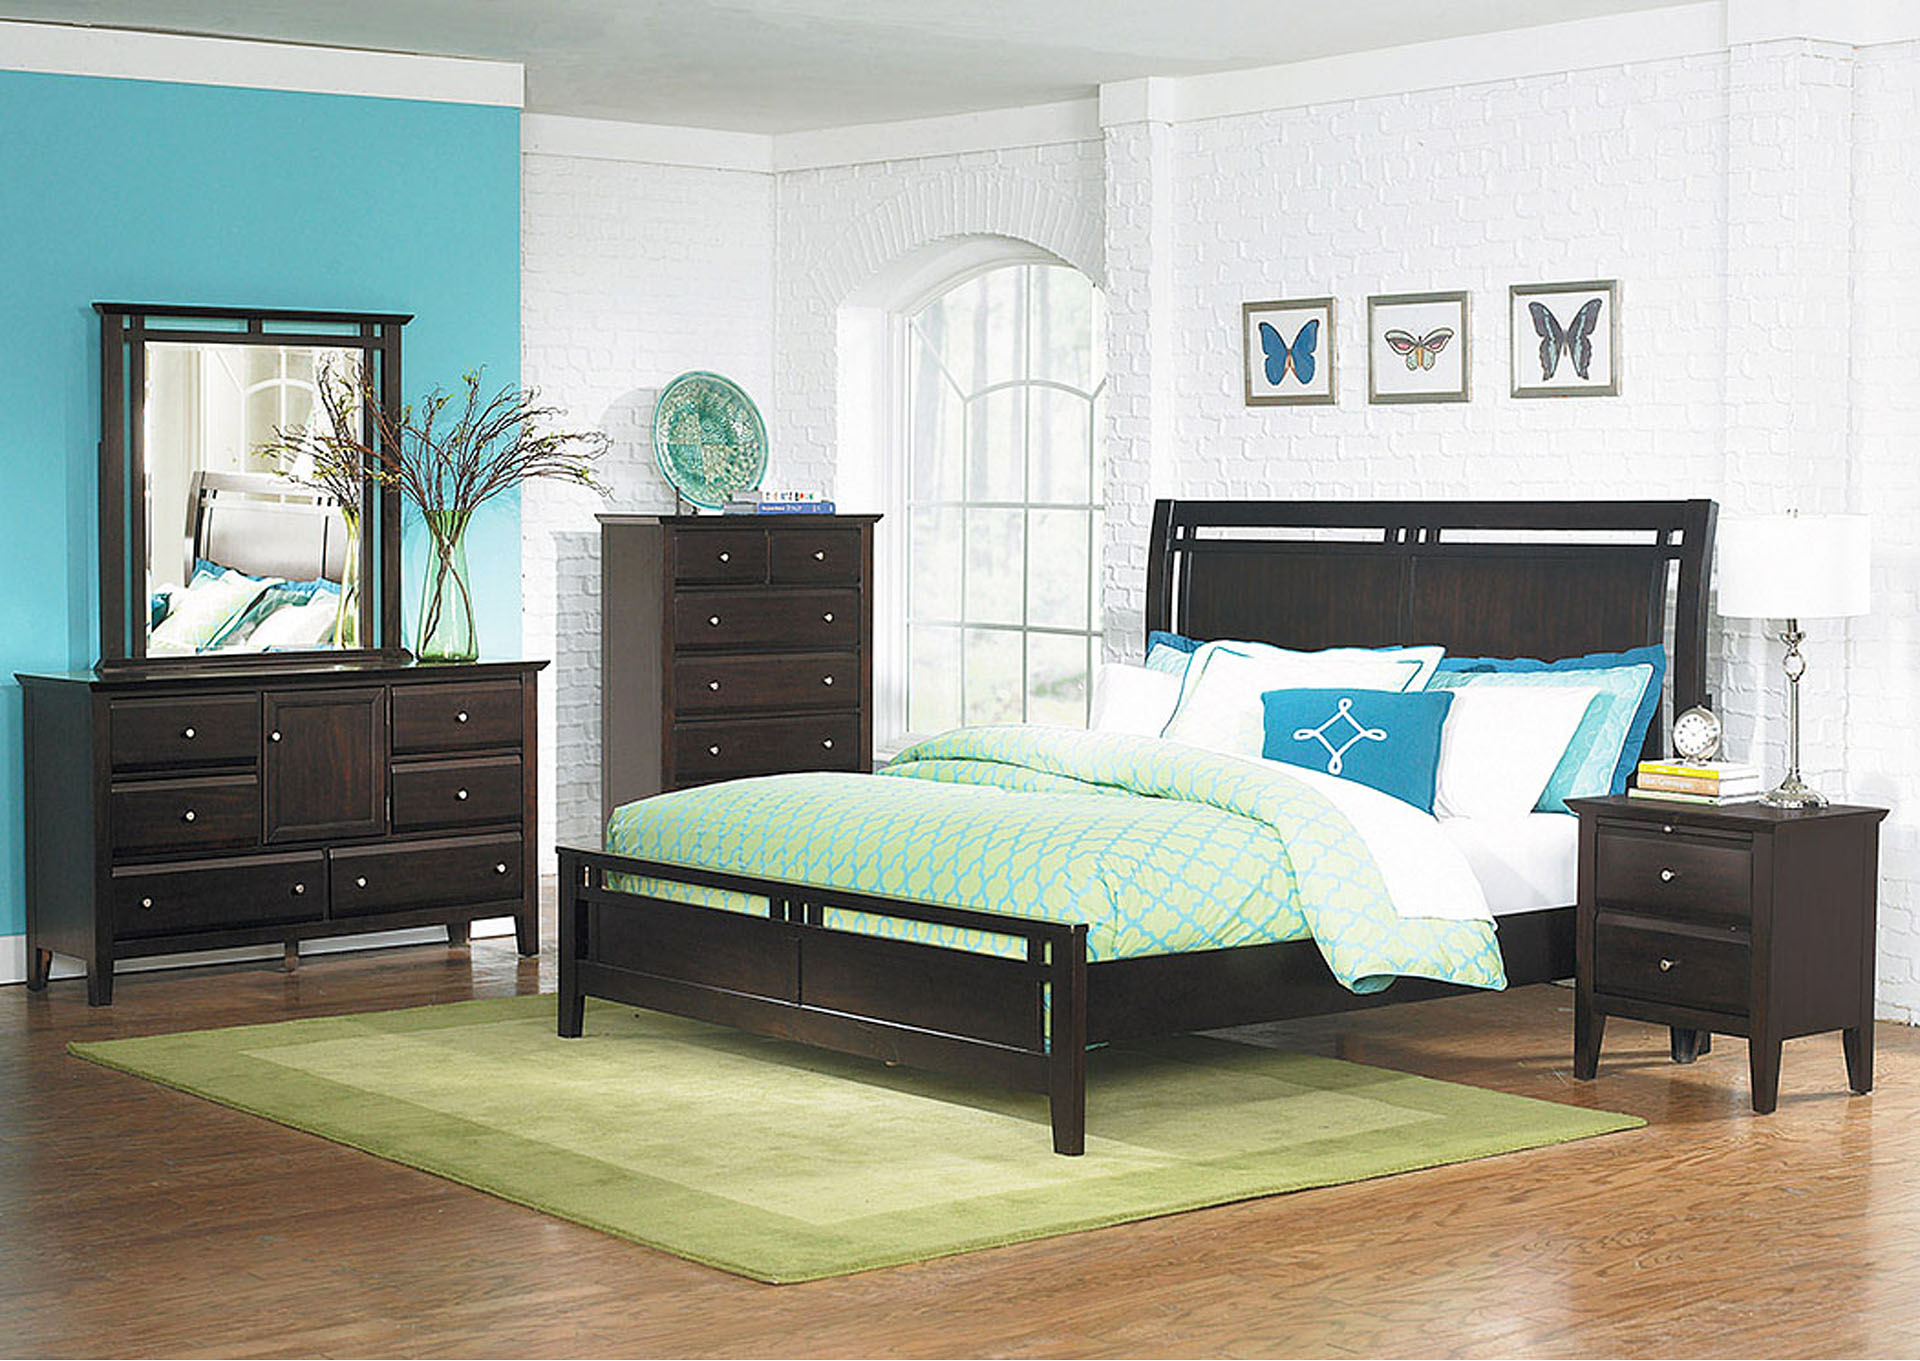 Verano Espresso Queen Panel Bed w/ Dresser, Mirror and 2 Nightstands,Homelegance